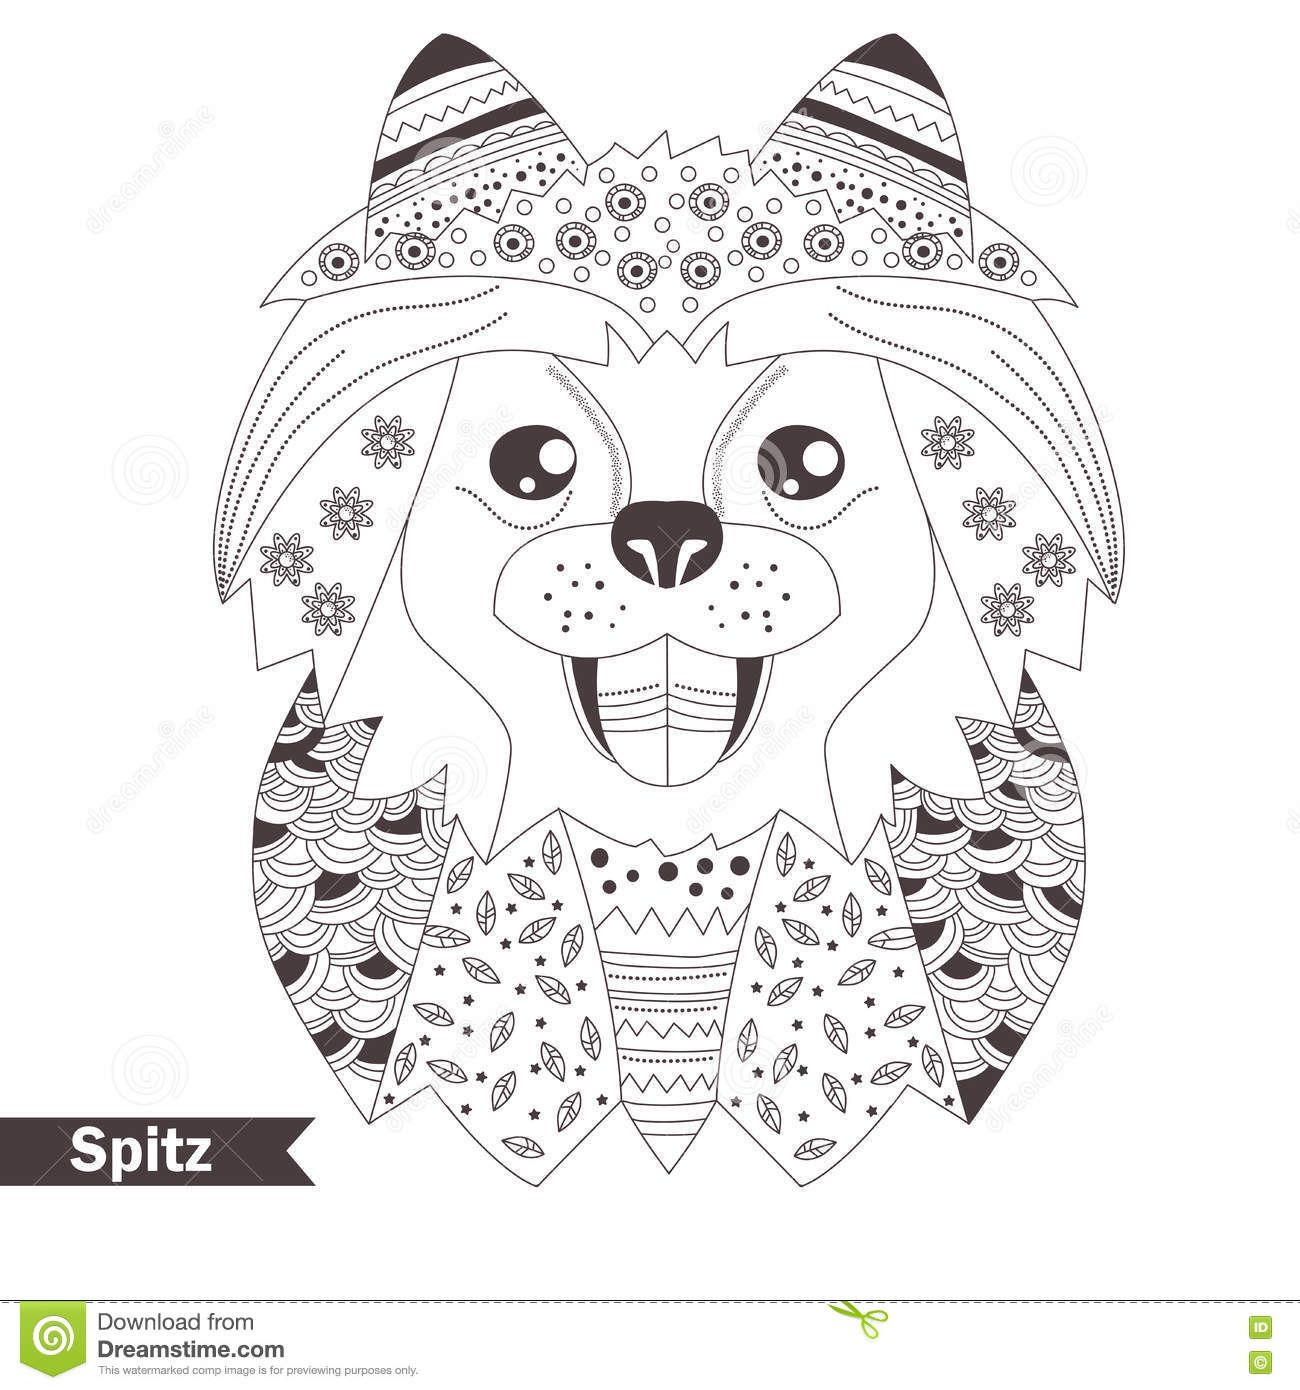 Pomeranian Coloring Pages For Adults Pomeranian Coloring Book Coloring Pages Dog Coloring Book Puppy Coloring Pages Dog Coloring Page [ 1390 x 1300 Pixel ]